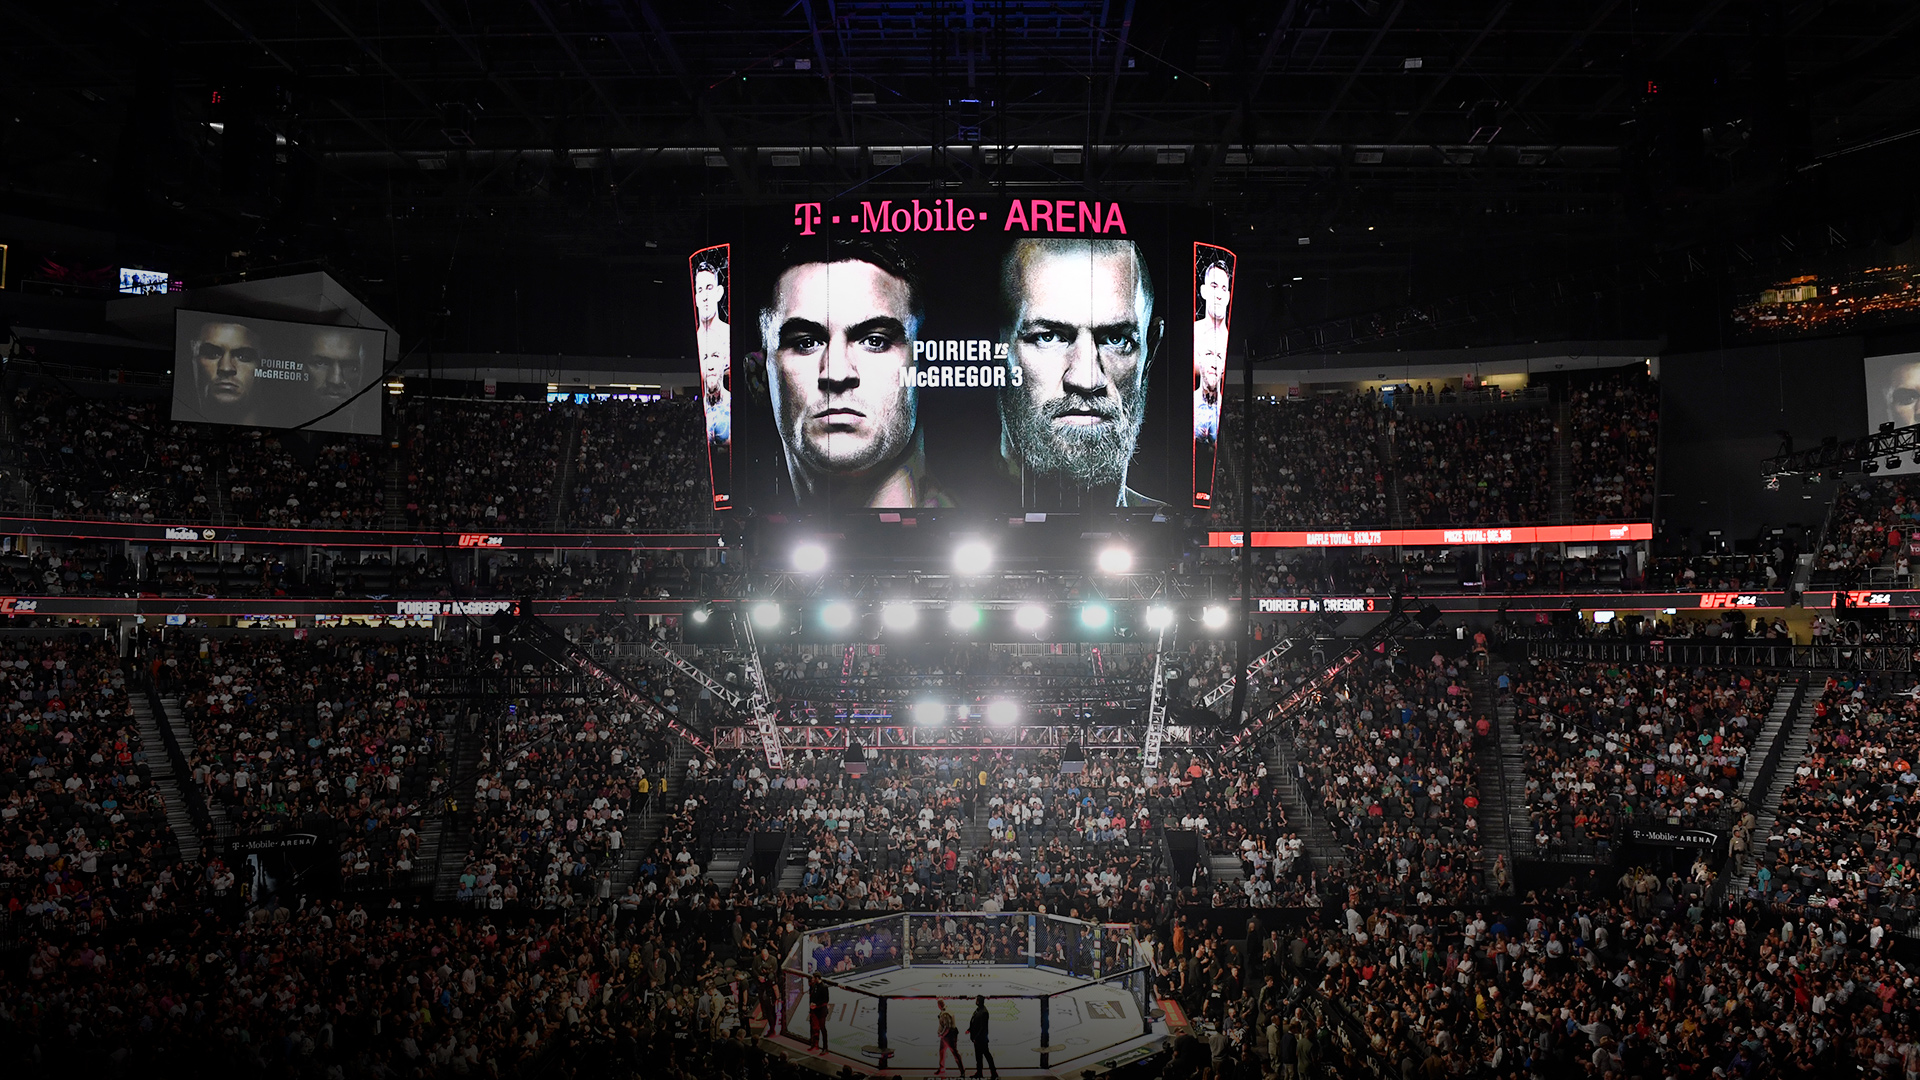 A general view of the Octagon during the UFC 264 event at T-Mobile Arena on July 10, 2021 in Las Vegas, Nevada. (Photo by Chris Unger/Zuffa LLC)